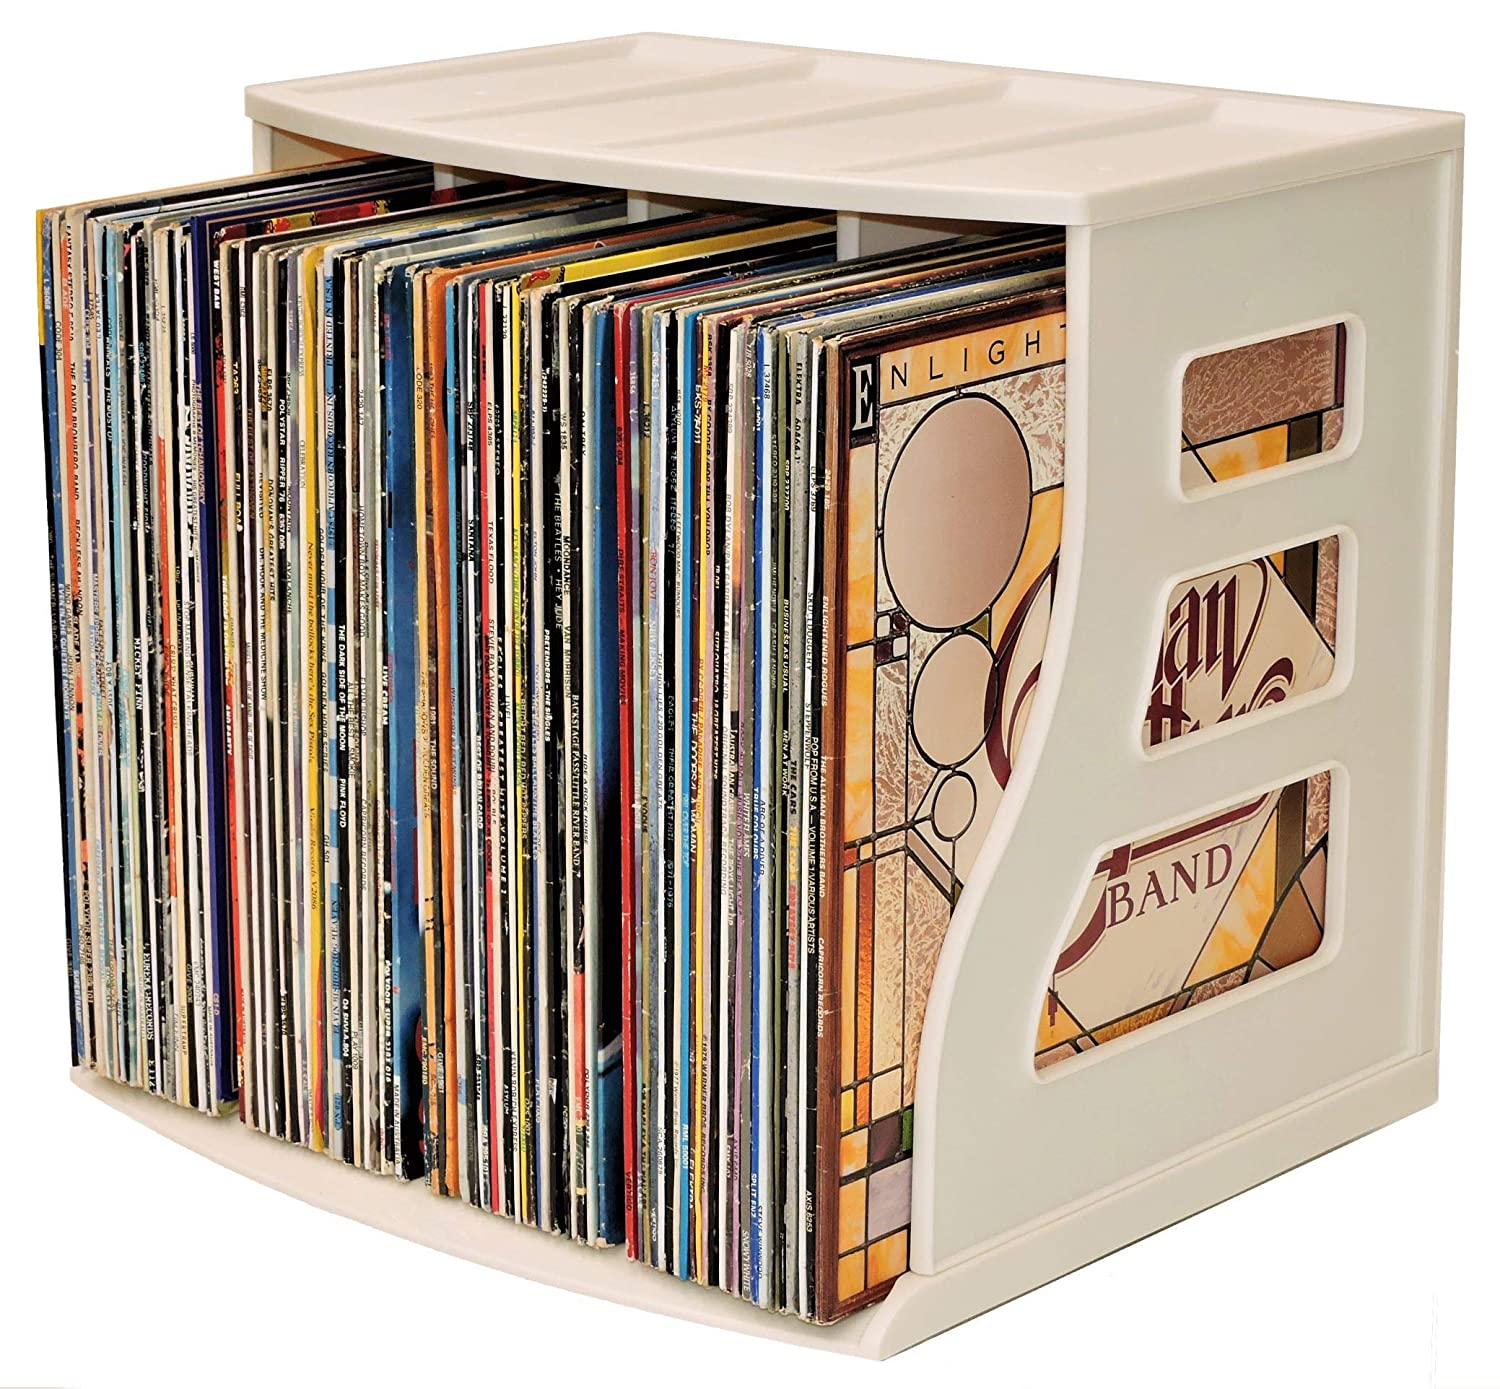 Binder Way LP Vinyl Record Storage Crate Stackable Organizer Holds Over 70 Albums 12x12 Paper Rack Scrapbook Cardstock Box Ring Binder Stand Lever Arch Shelf Cube Magazine Holder BW0001